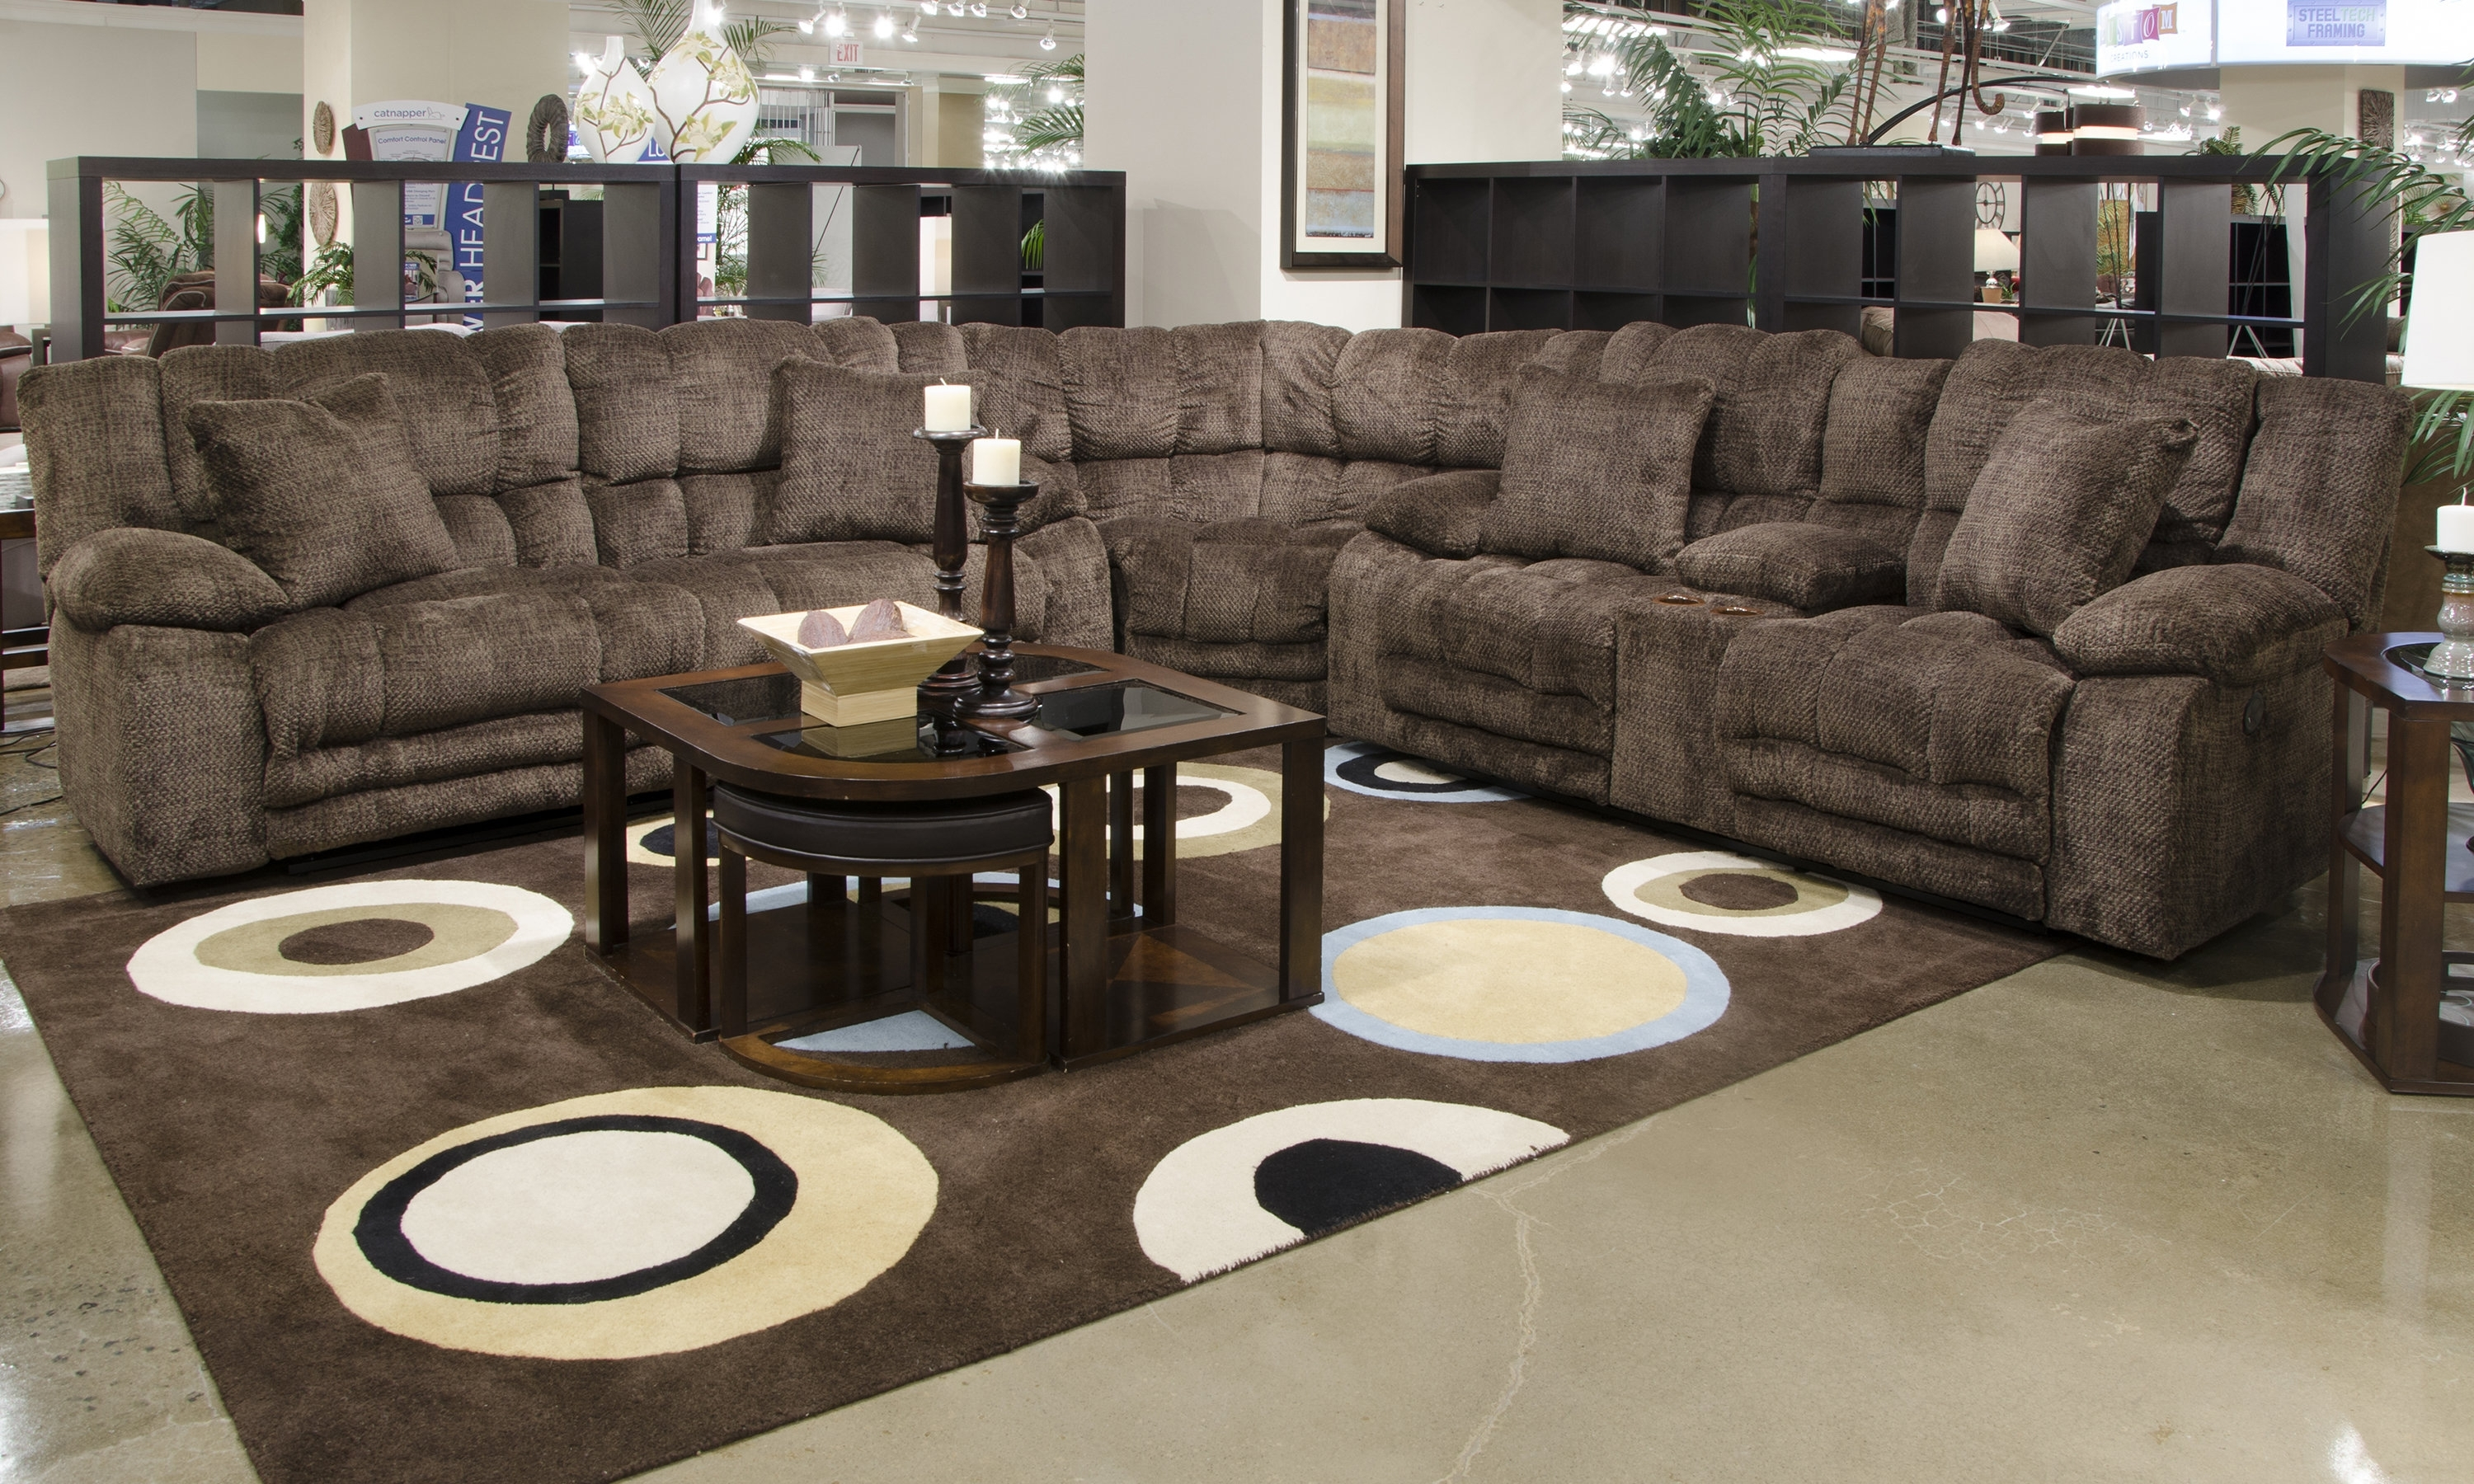 Catnapper Branson Reclining Sectional | Wayfair with regard to Karen 3 Piece Sectionals (Image 7 of 30)